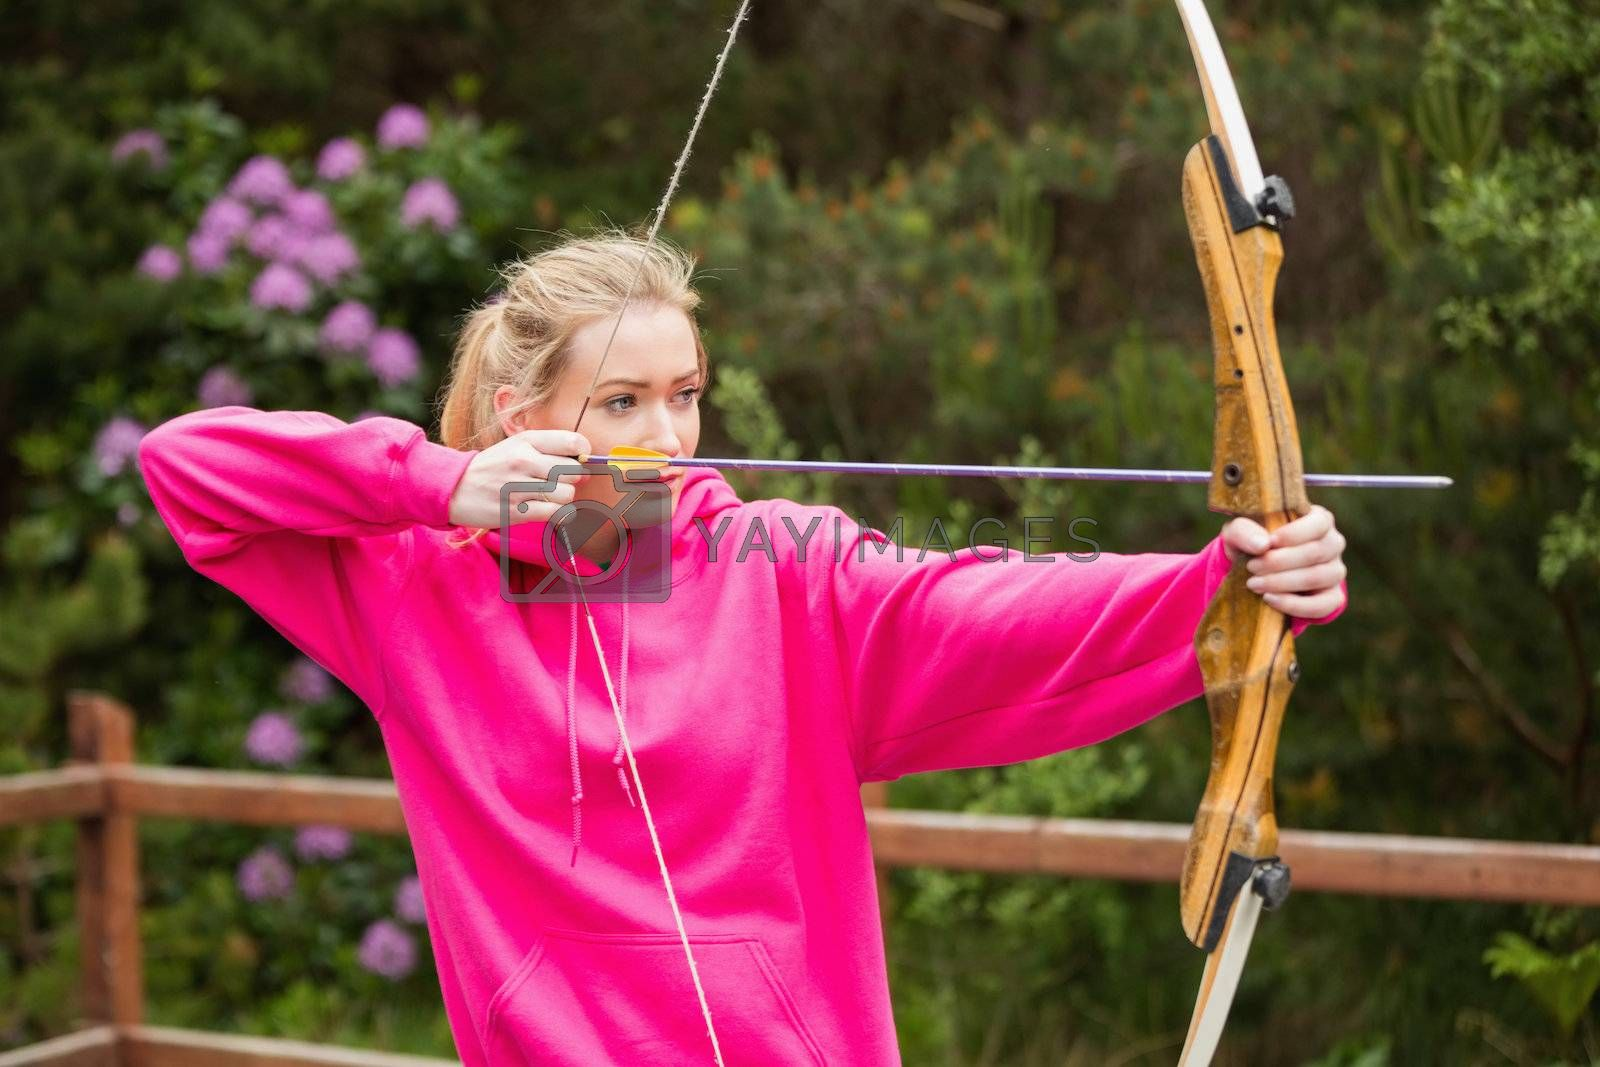 Concentrating blonde practicing archery by Wavebreakmedia